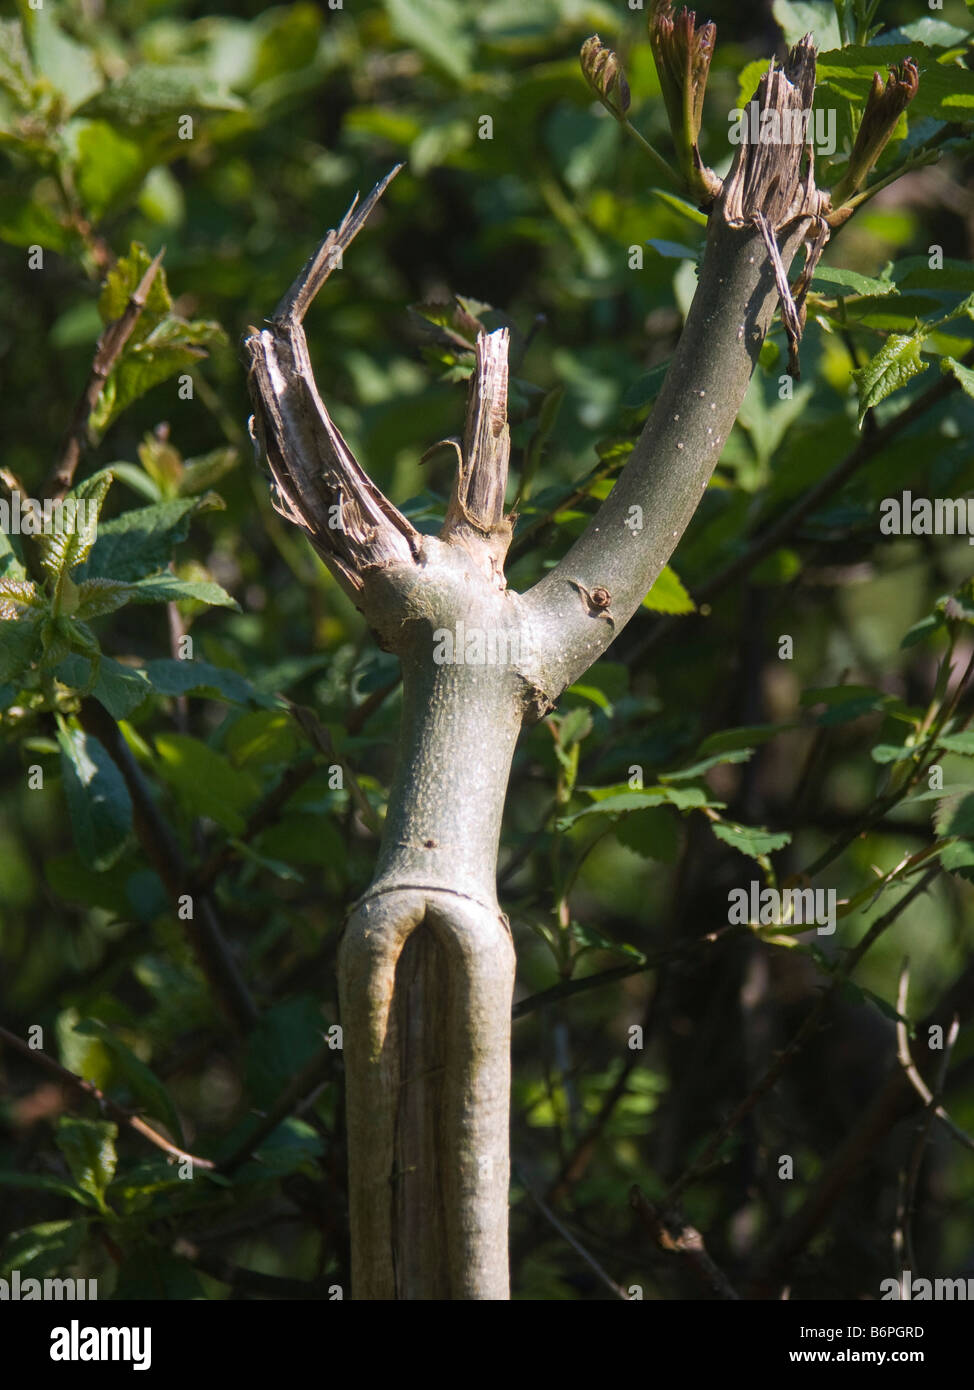 Broken branch resembling a dancer - Stock Image